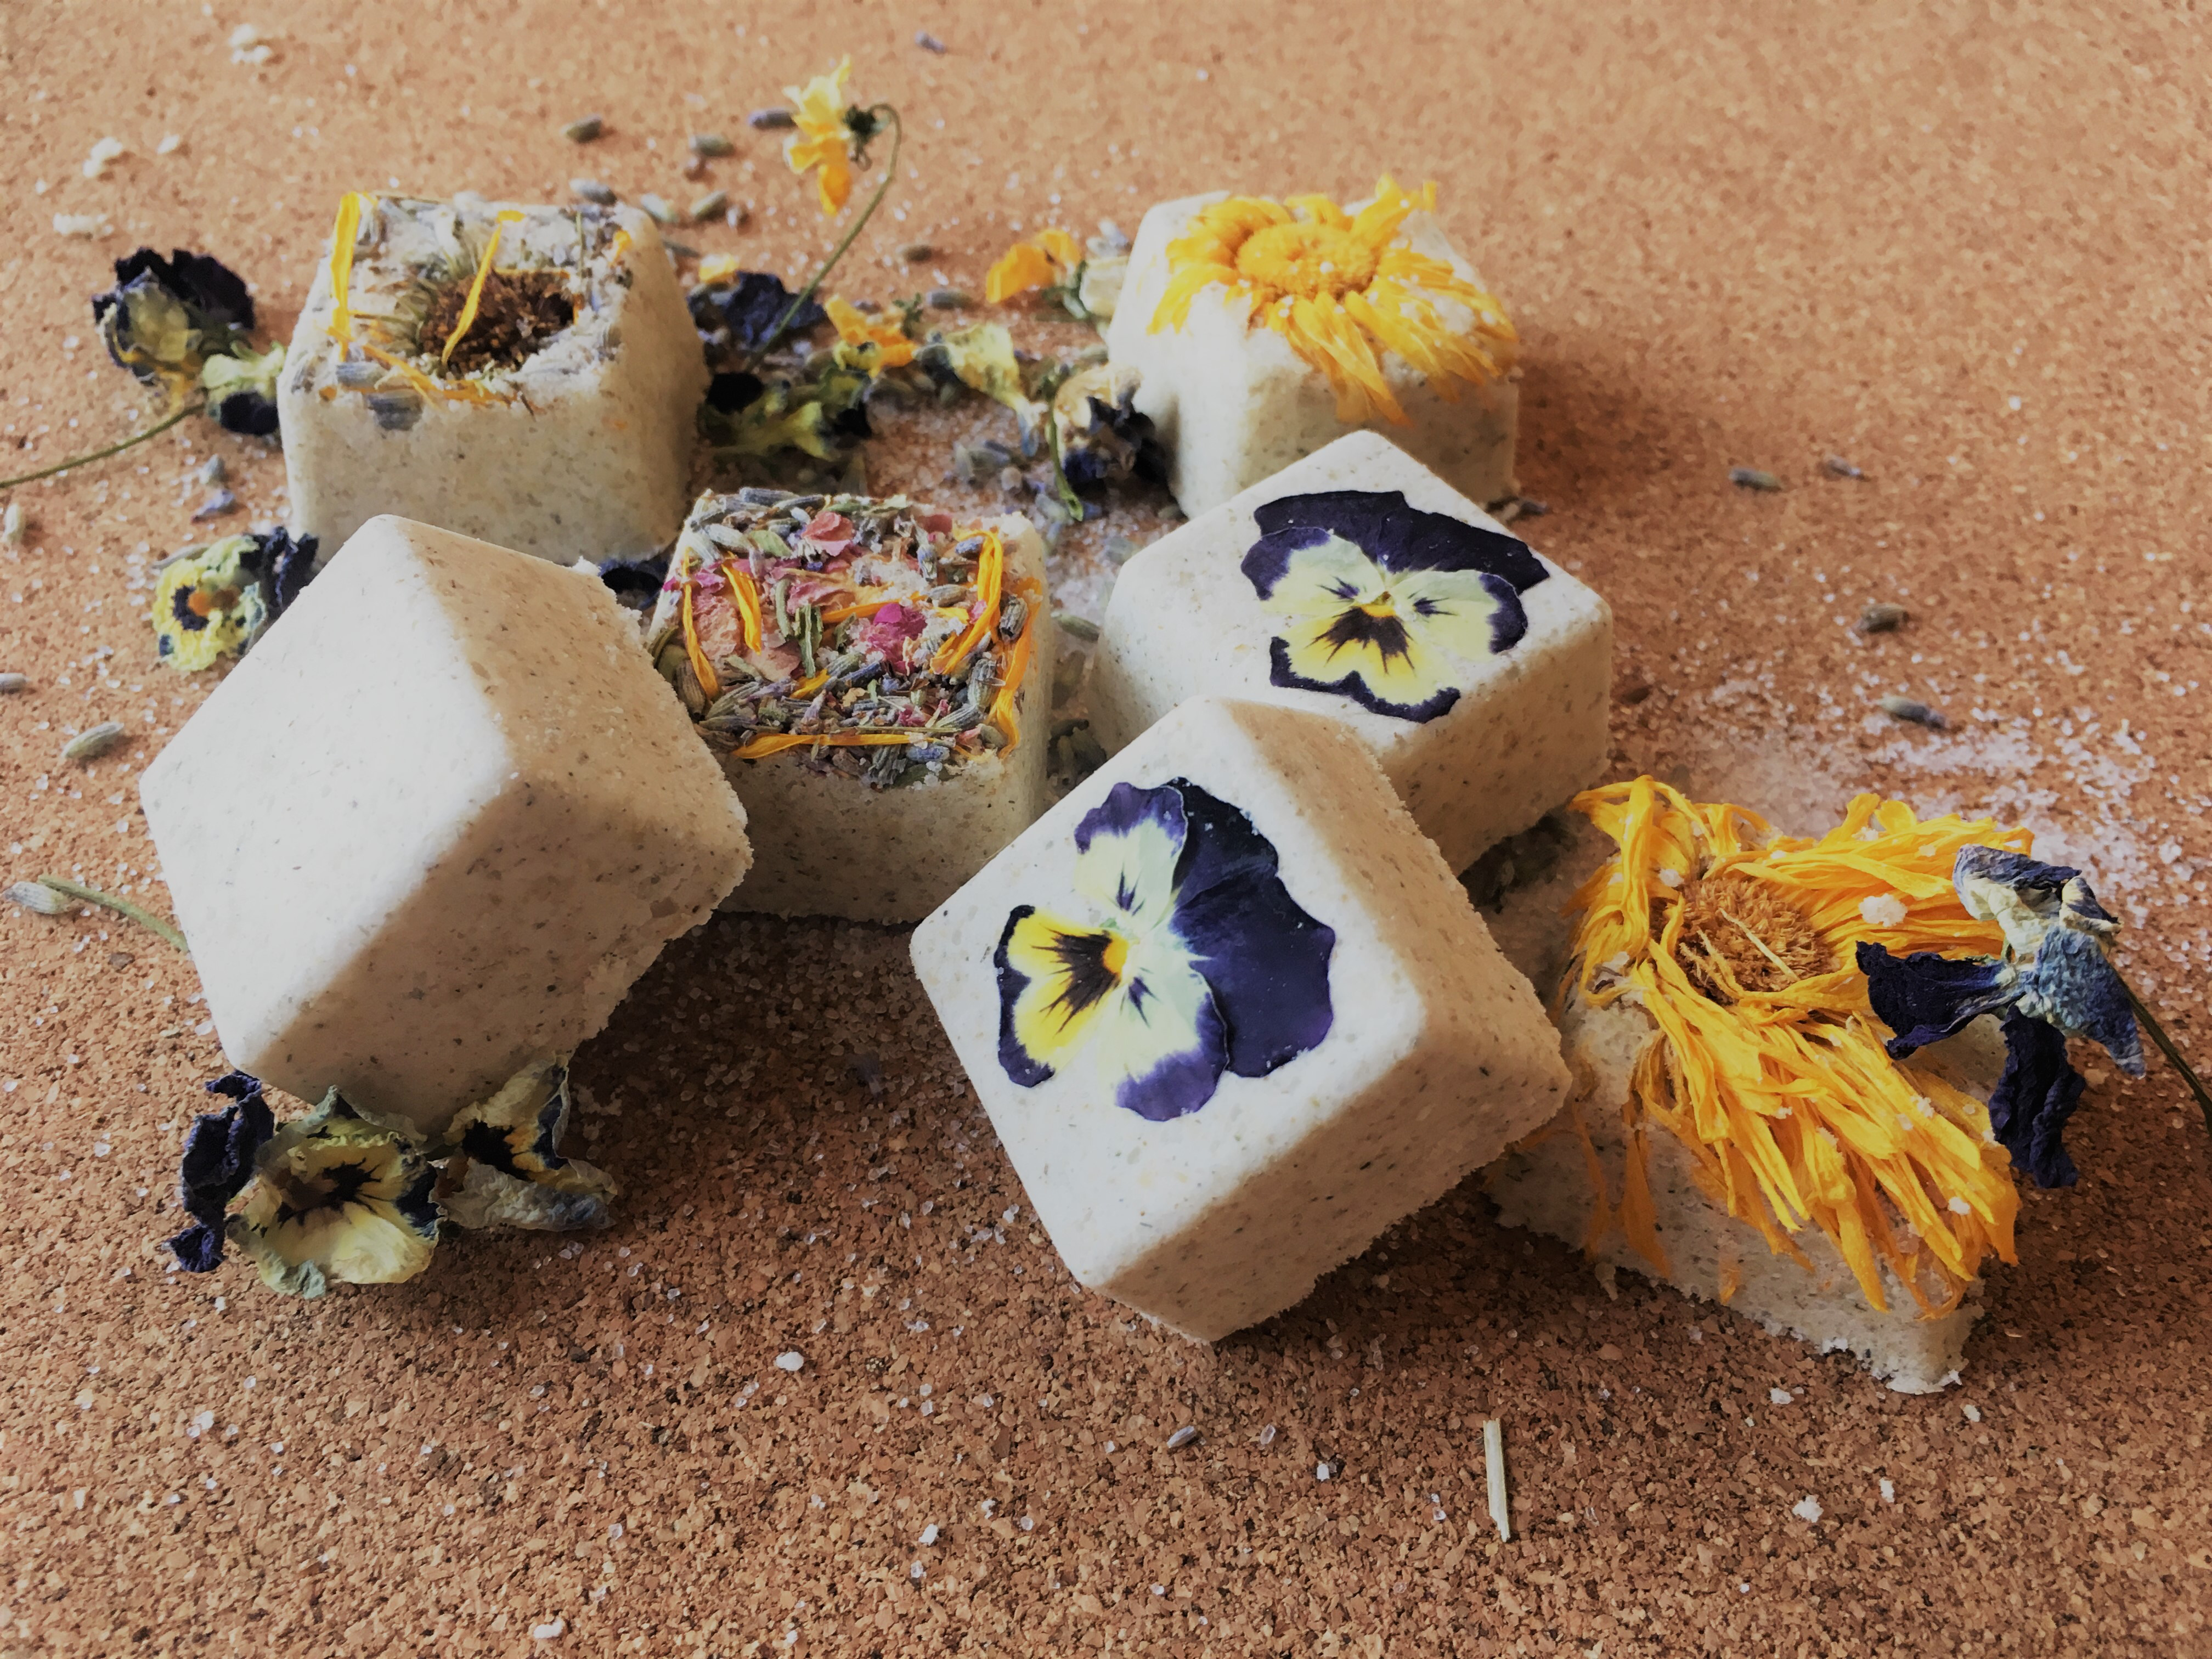 Make your own ecological bath bombs and bath oil